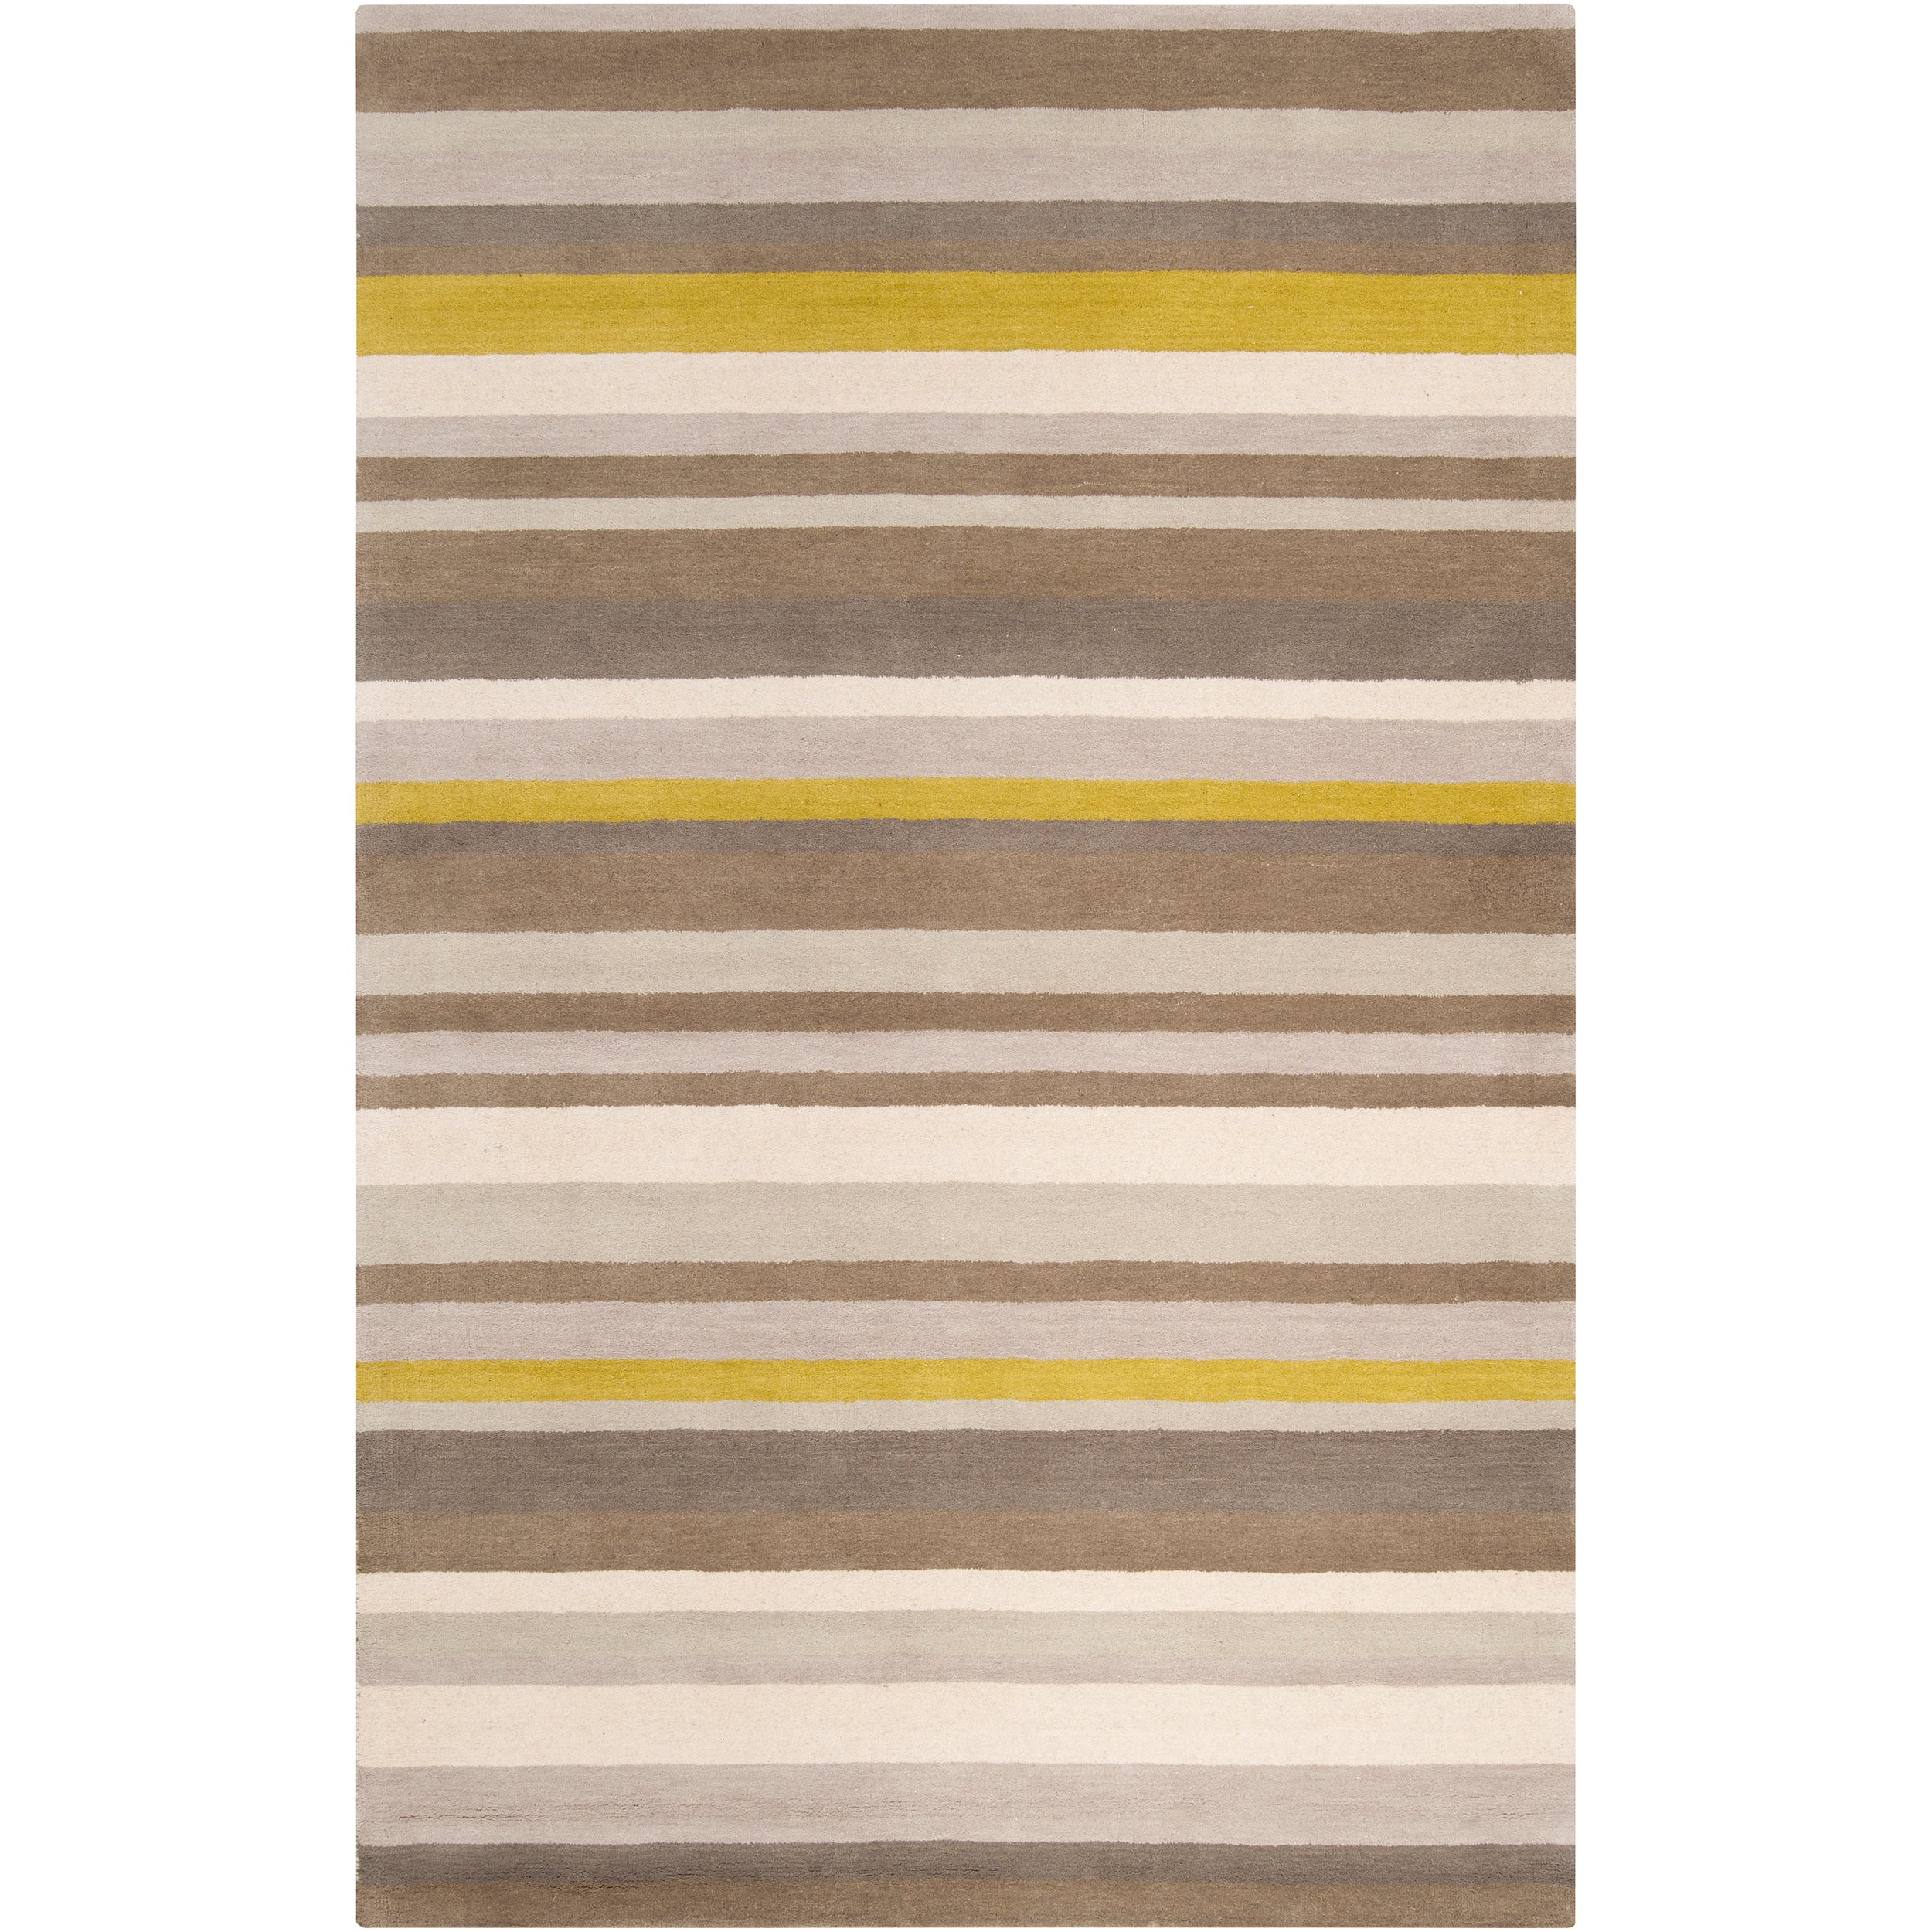 Loomed Olive/Oatmeal/Mustard Striped Madison Square Wool Rug (5' x 7'6)